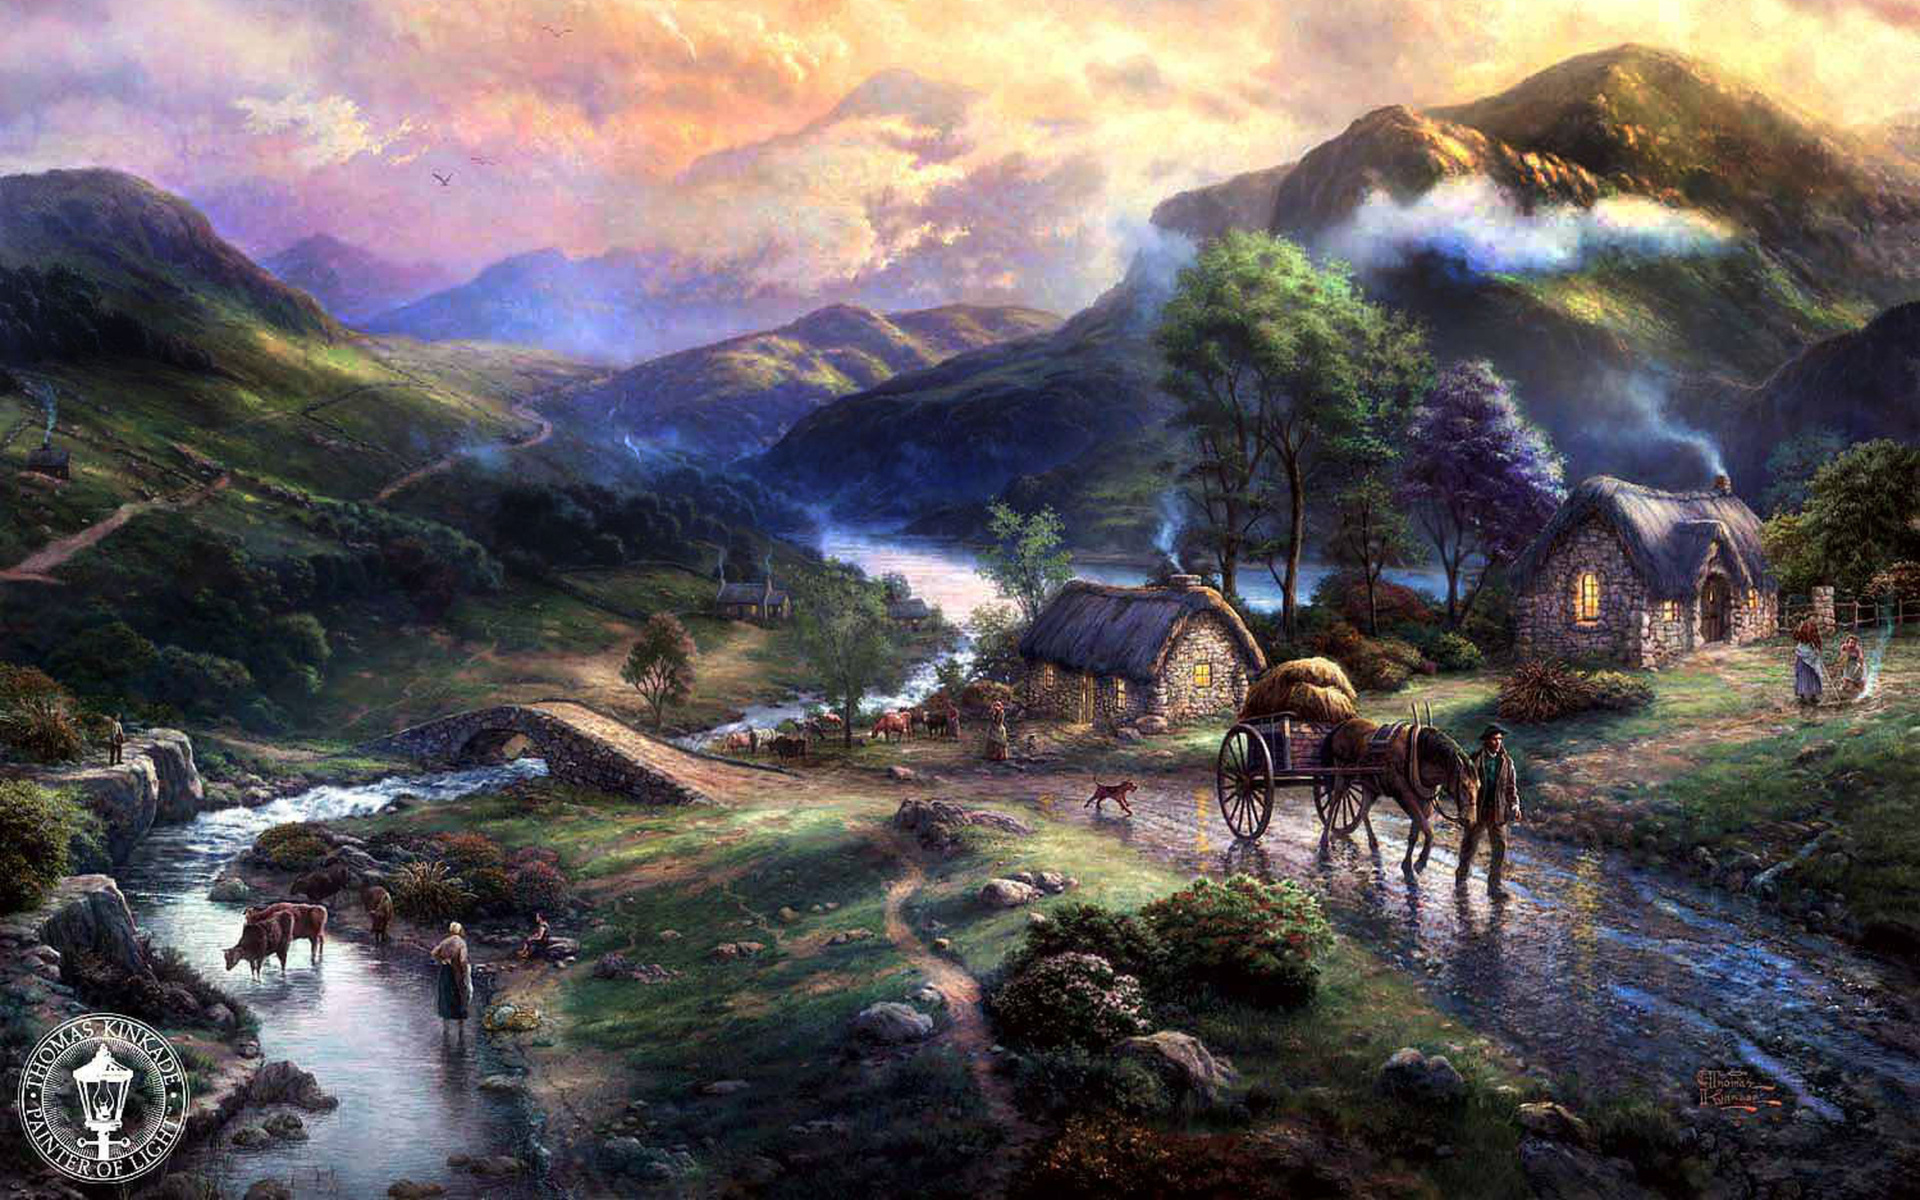 Thomas kinkade wallpapers awesome wallpapers - Art village wallpaper ...